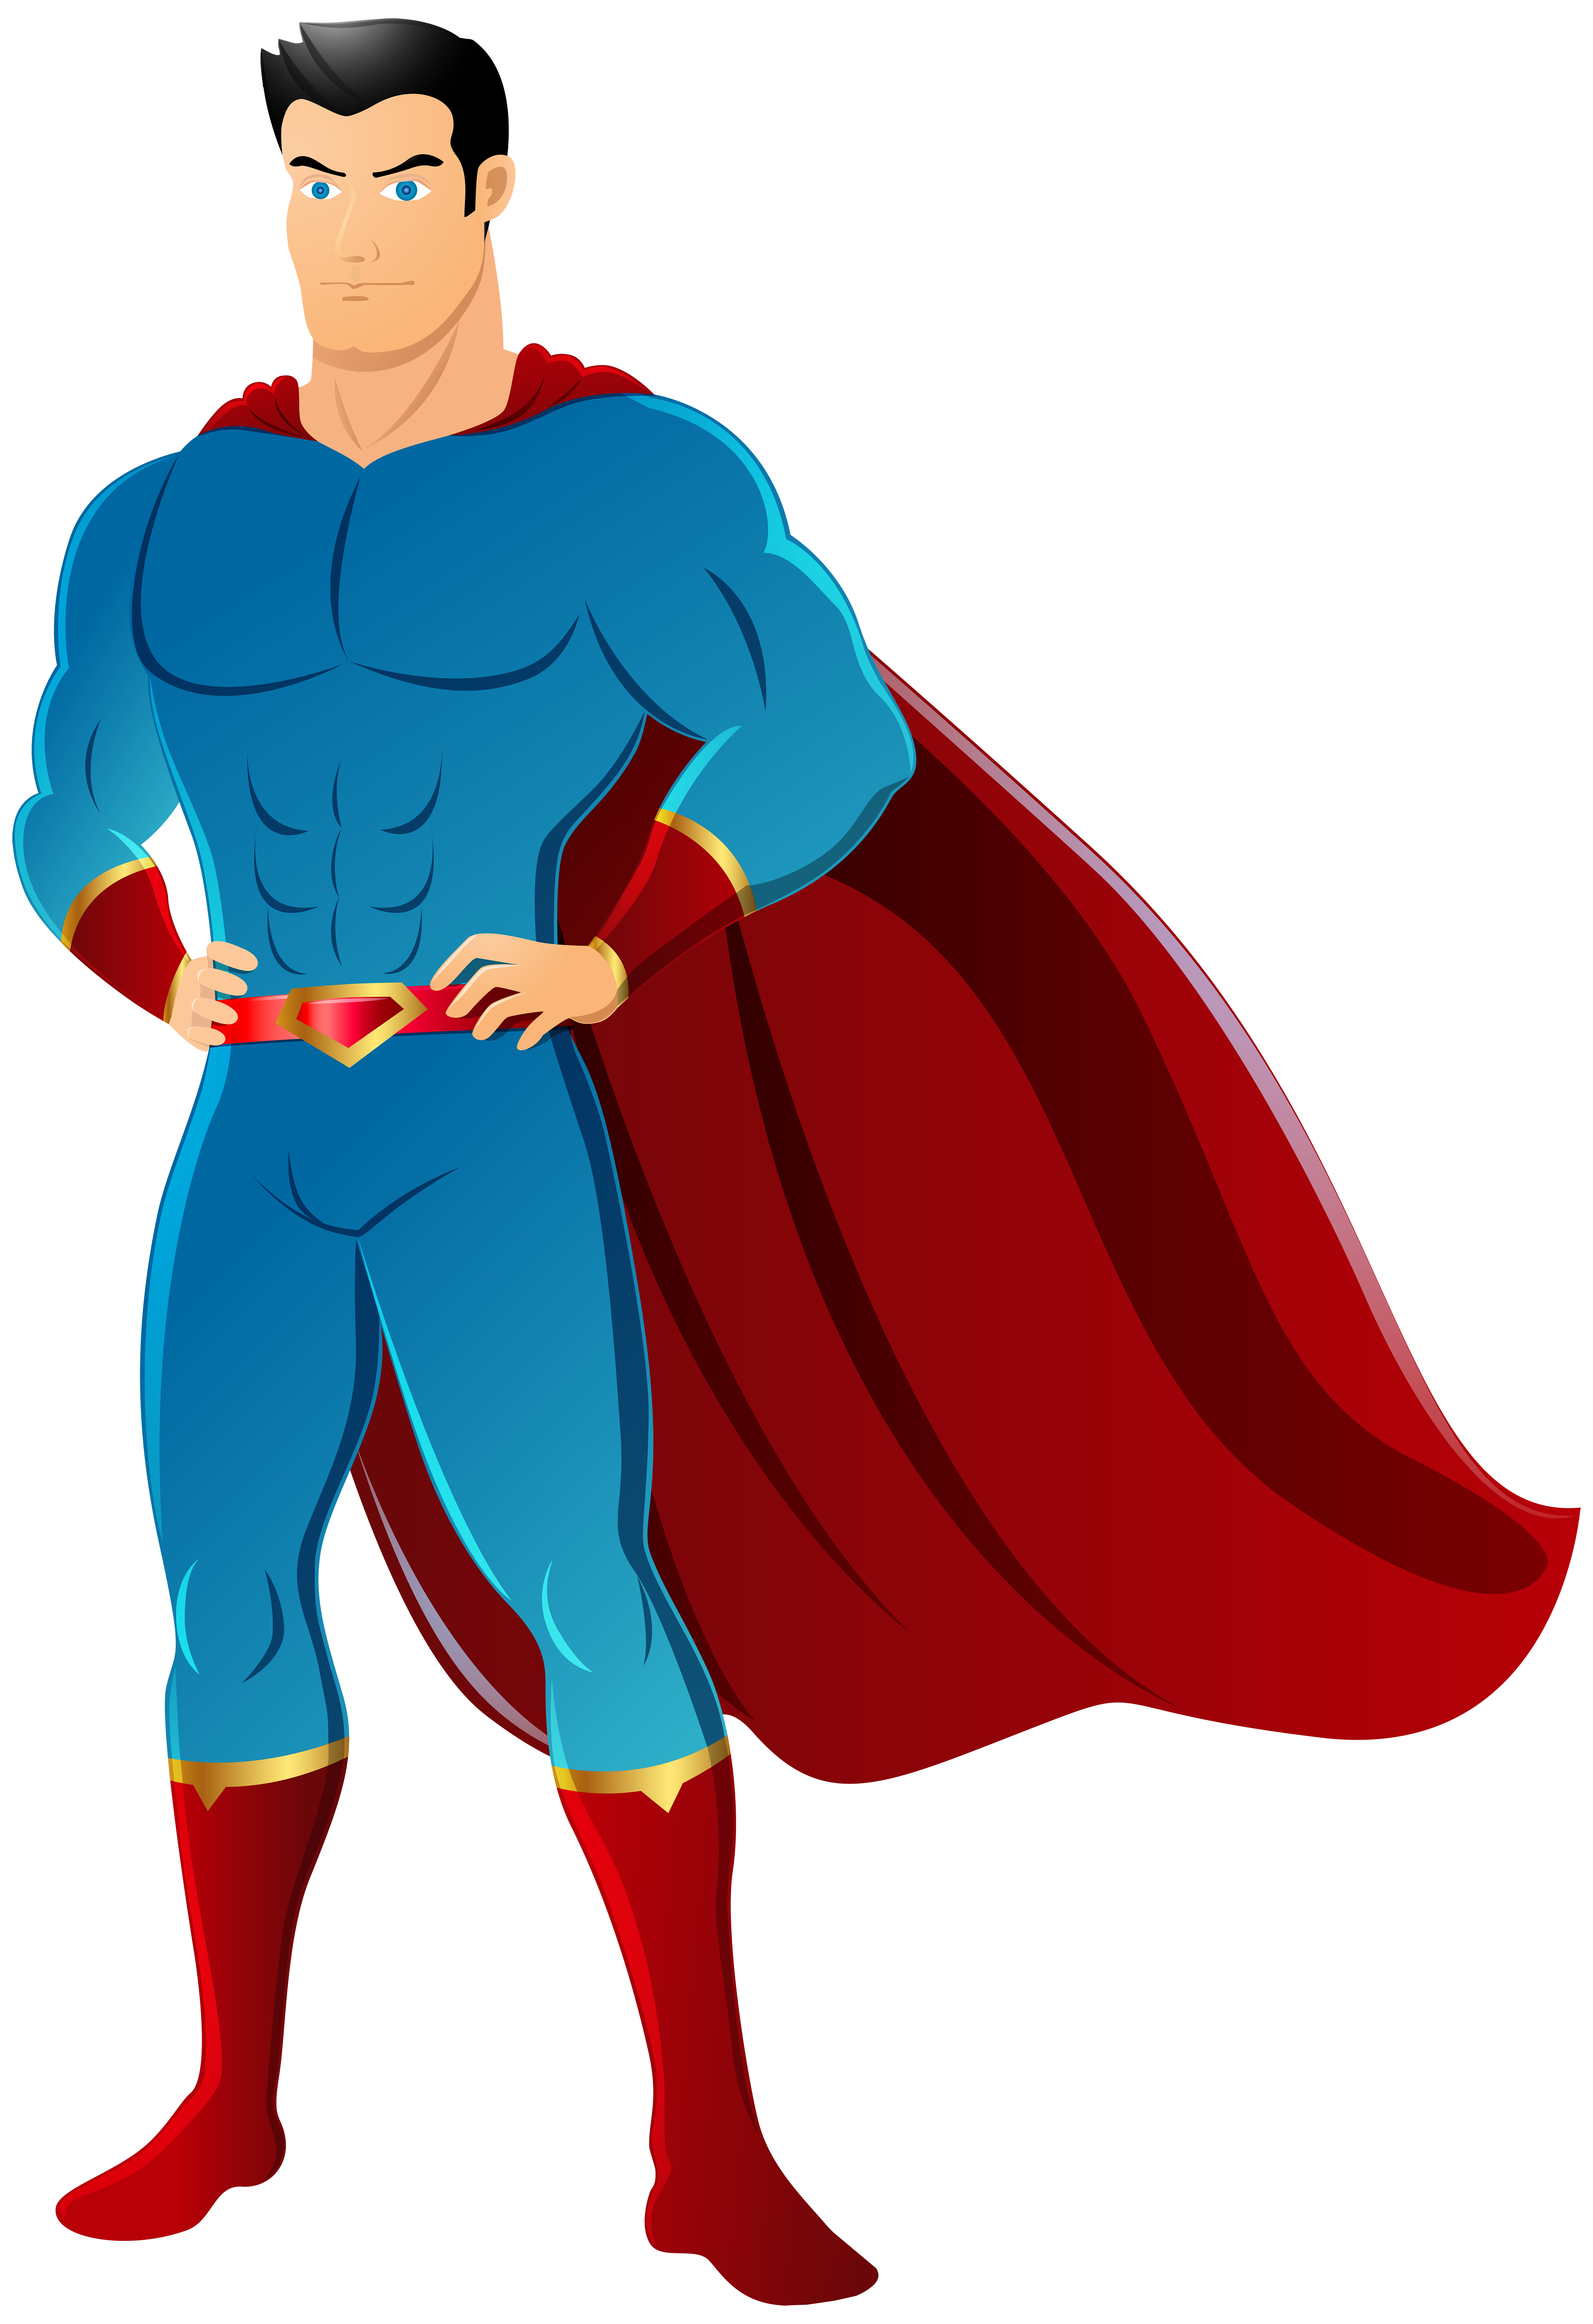 Superman clipart hd clip black and white stock Superman Clipart at GetDrawings.com | Free for personal use Superman ... clip black and white stock